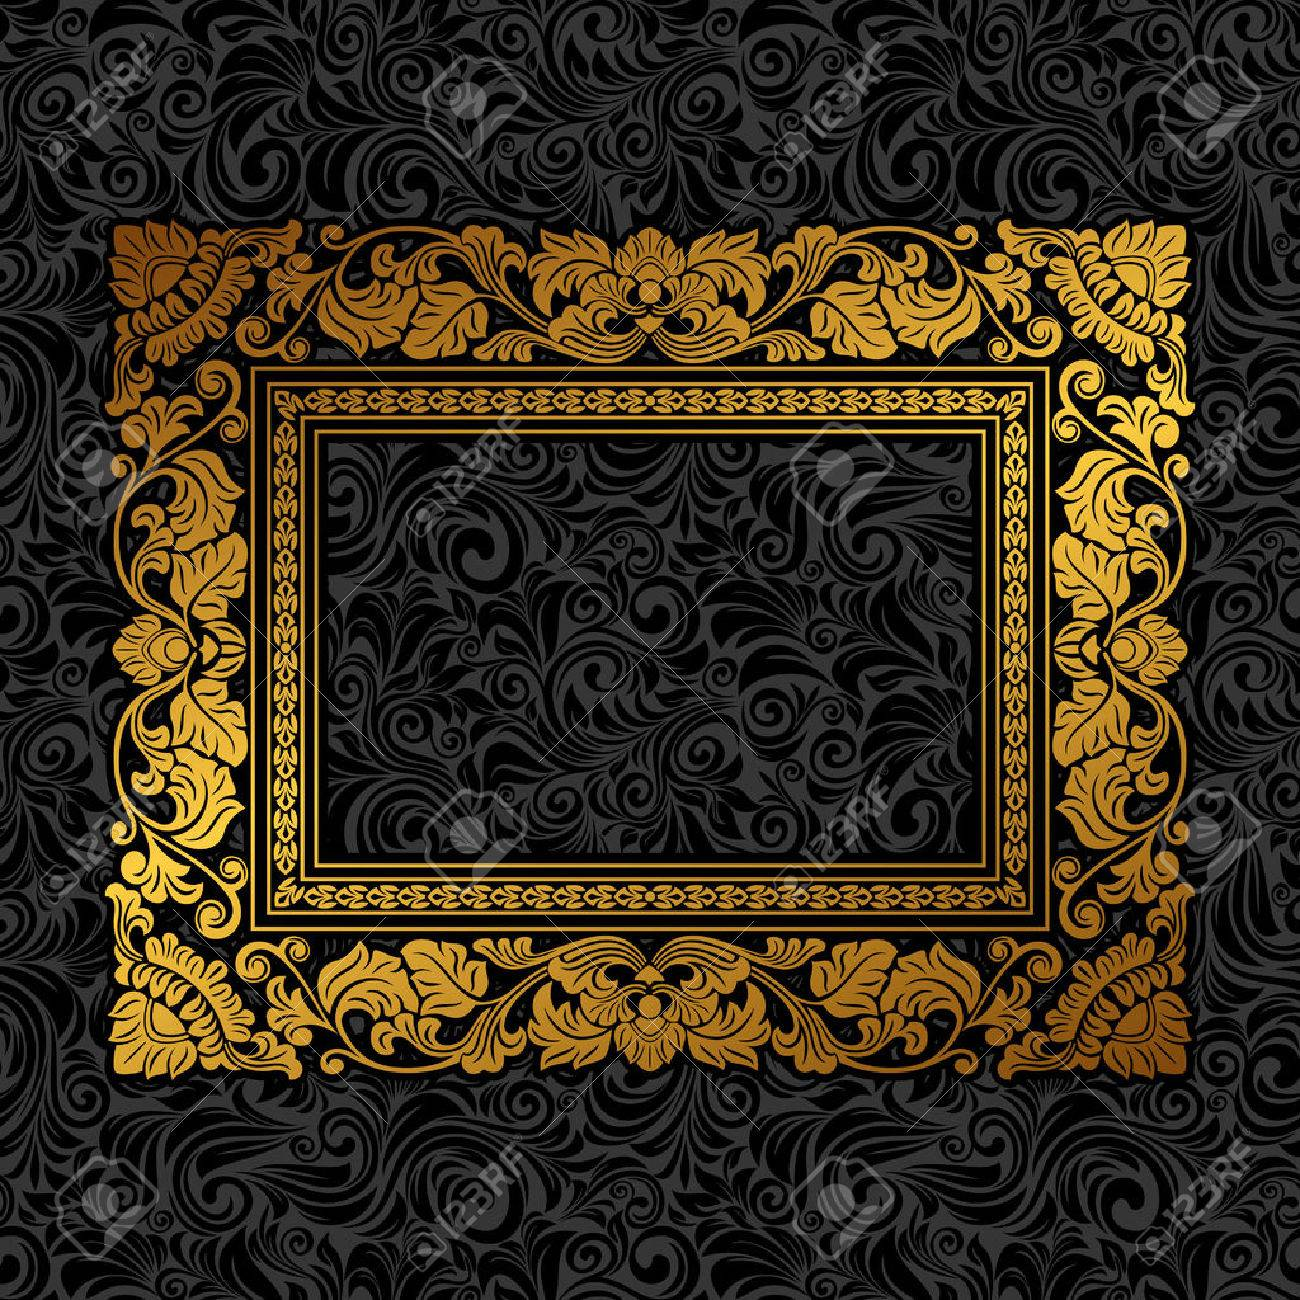 Royal gold Picture frame on the dark wallpaper - 54354224